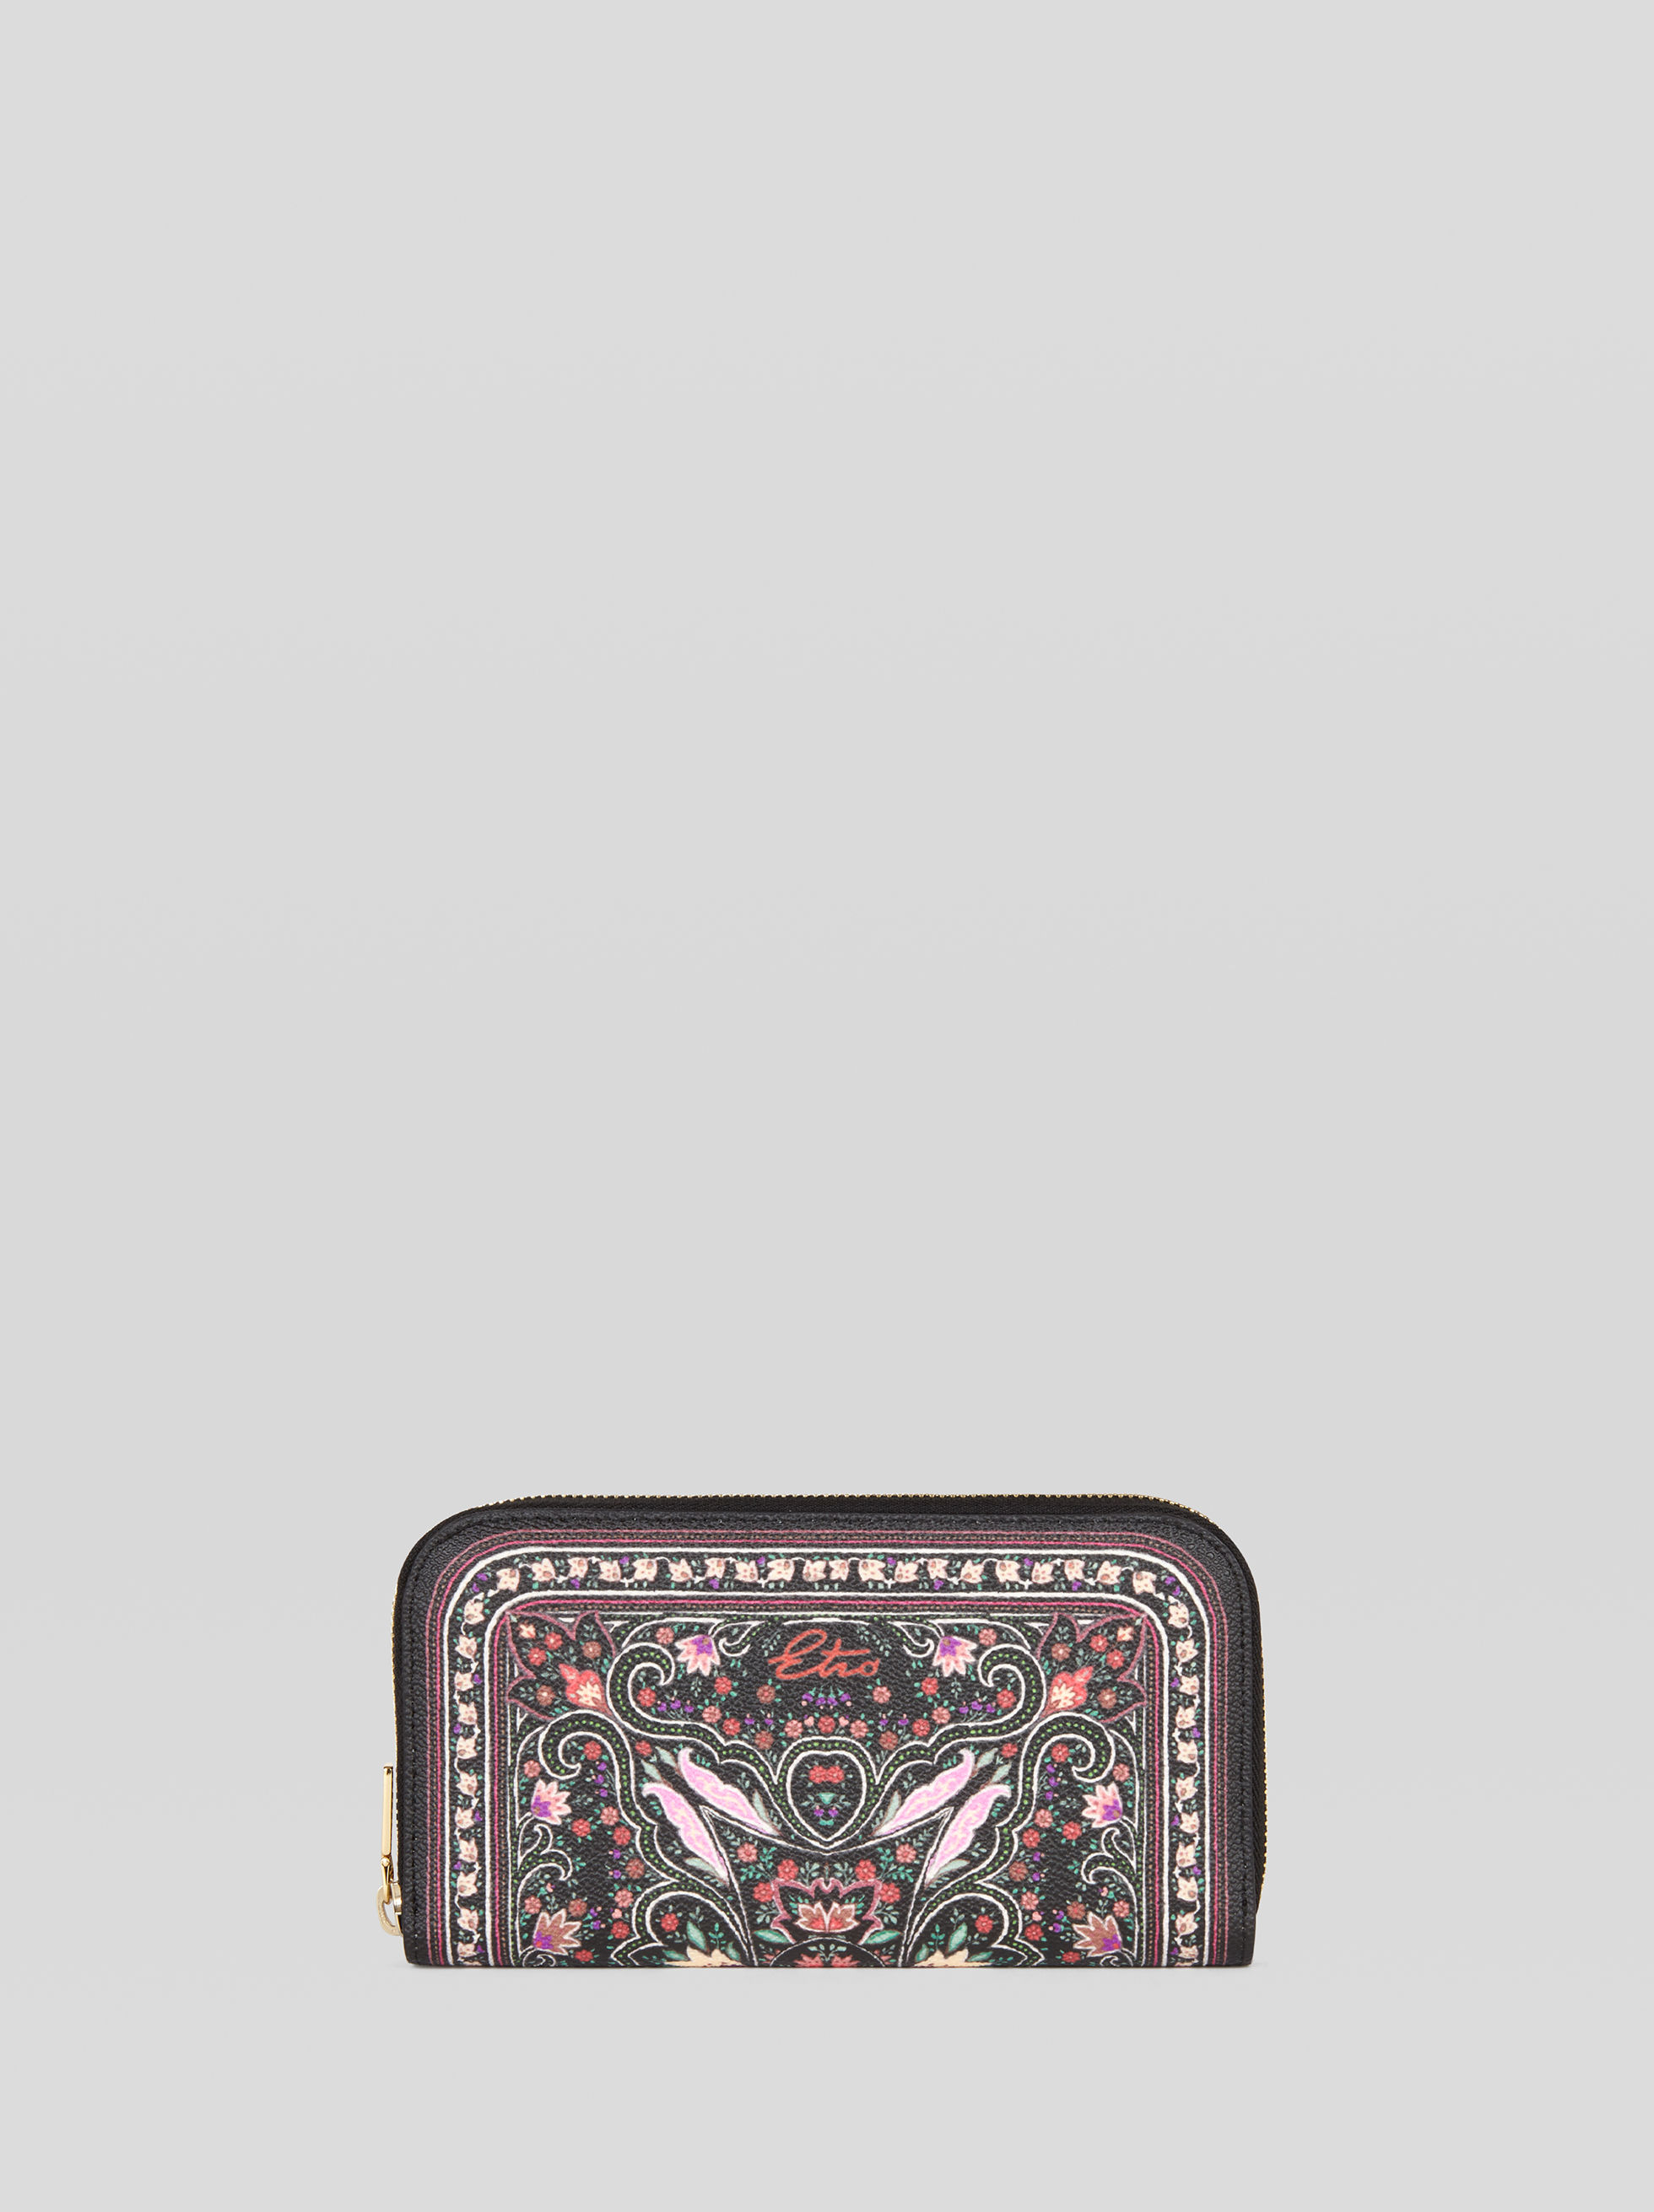 LARGE PURSE WITH FLORAL PAISLEY PRINT